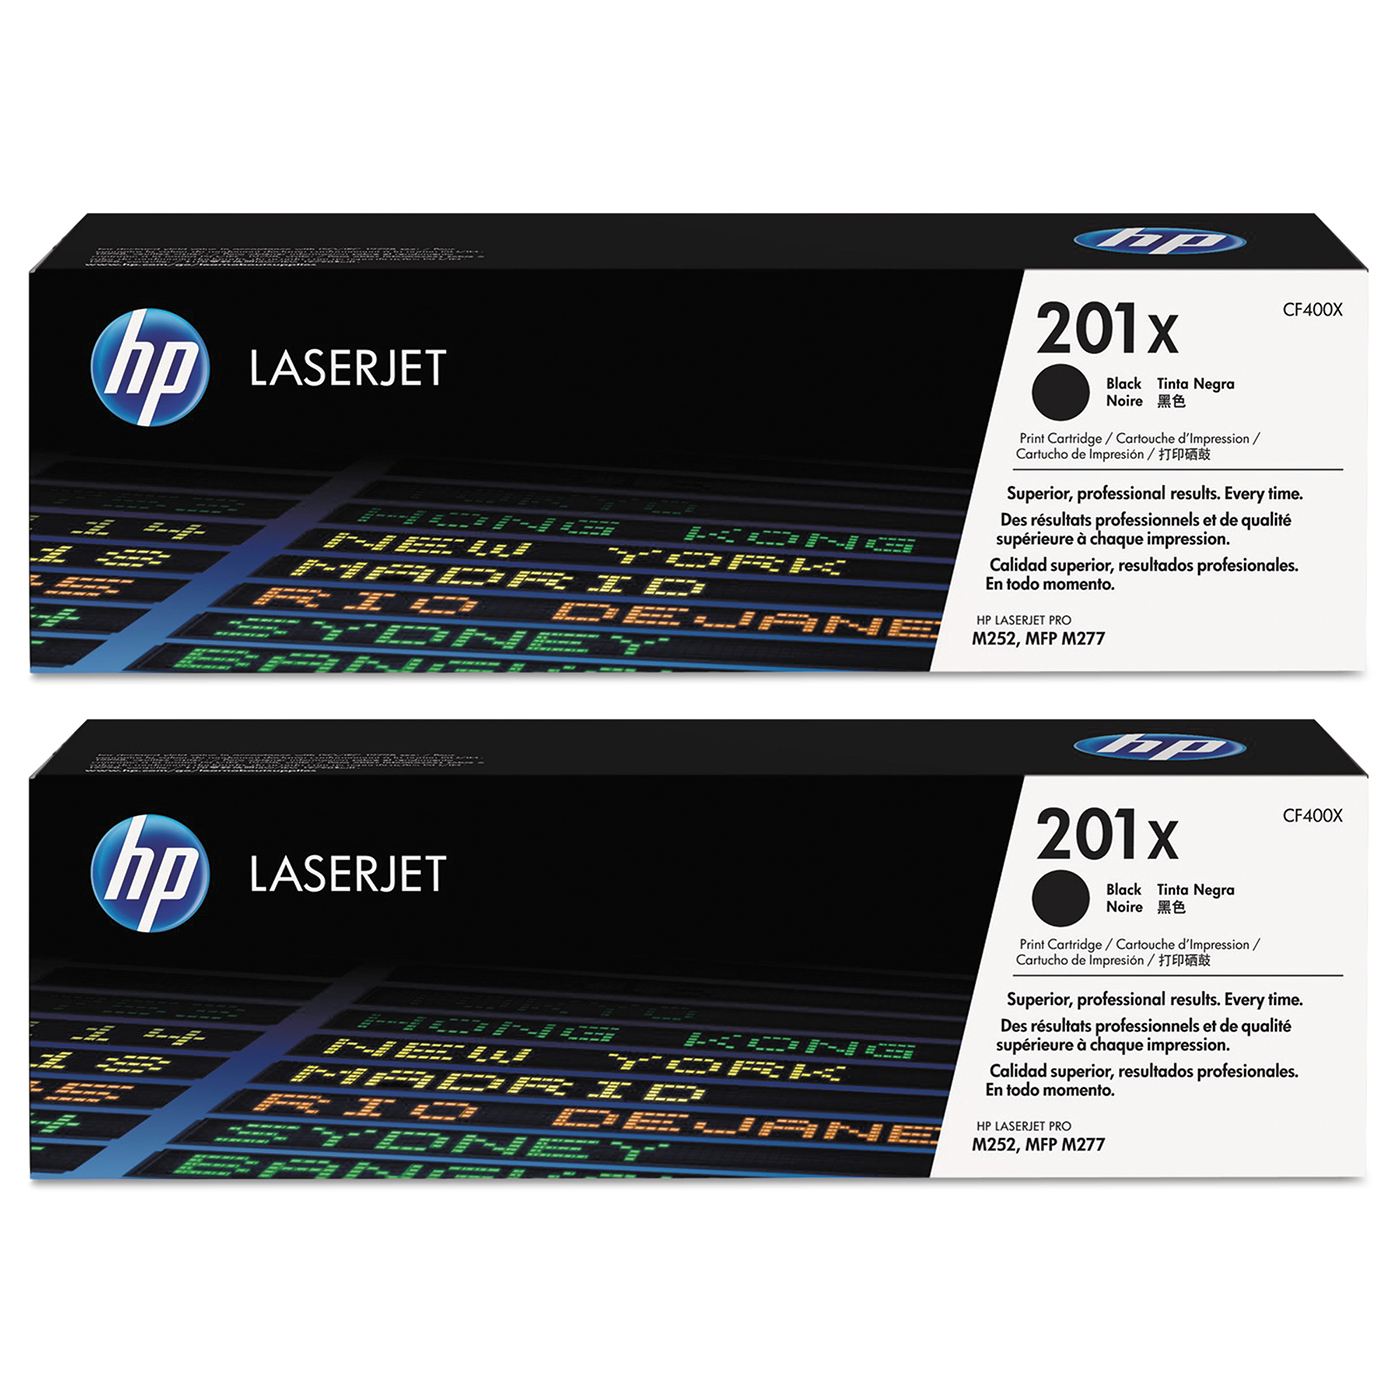 Buy two HP201x Black Toner and get $25 off